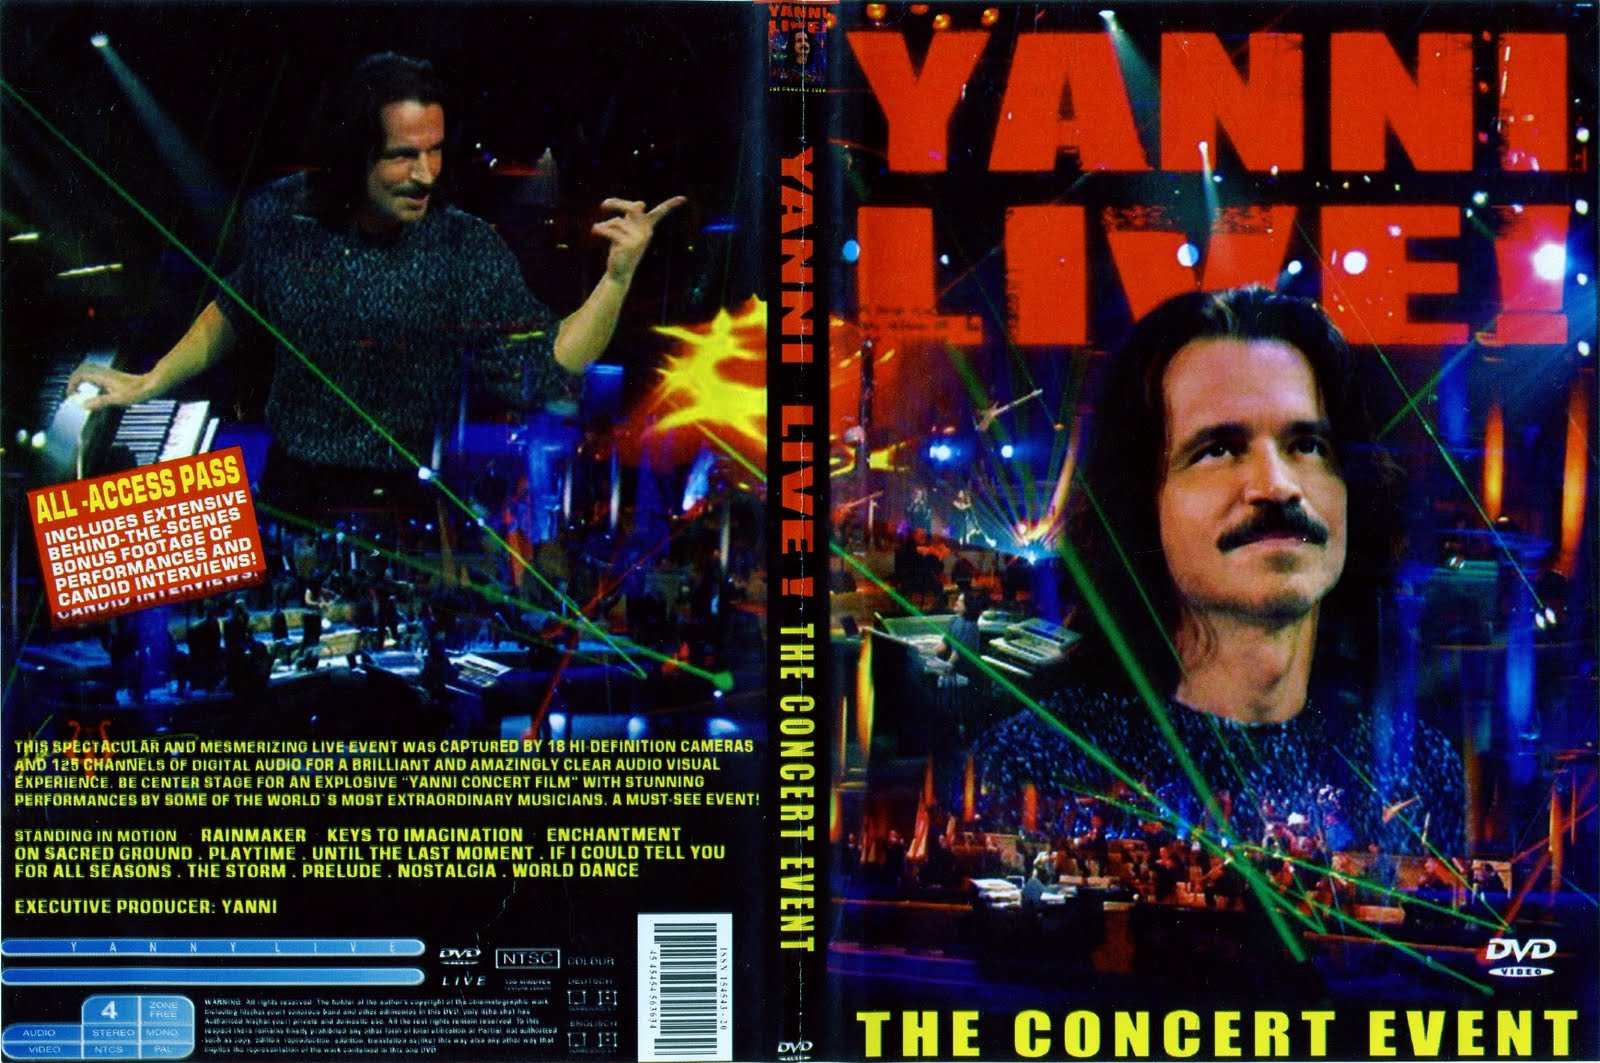 Fshare] - Yanni - 2006 Live! The Concert Event (2006) [MP3